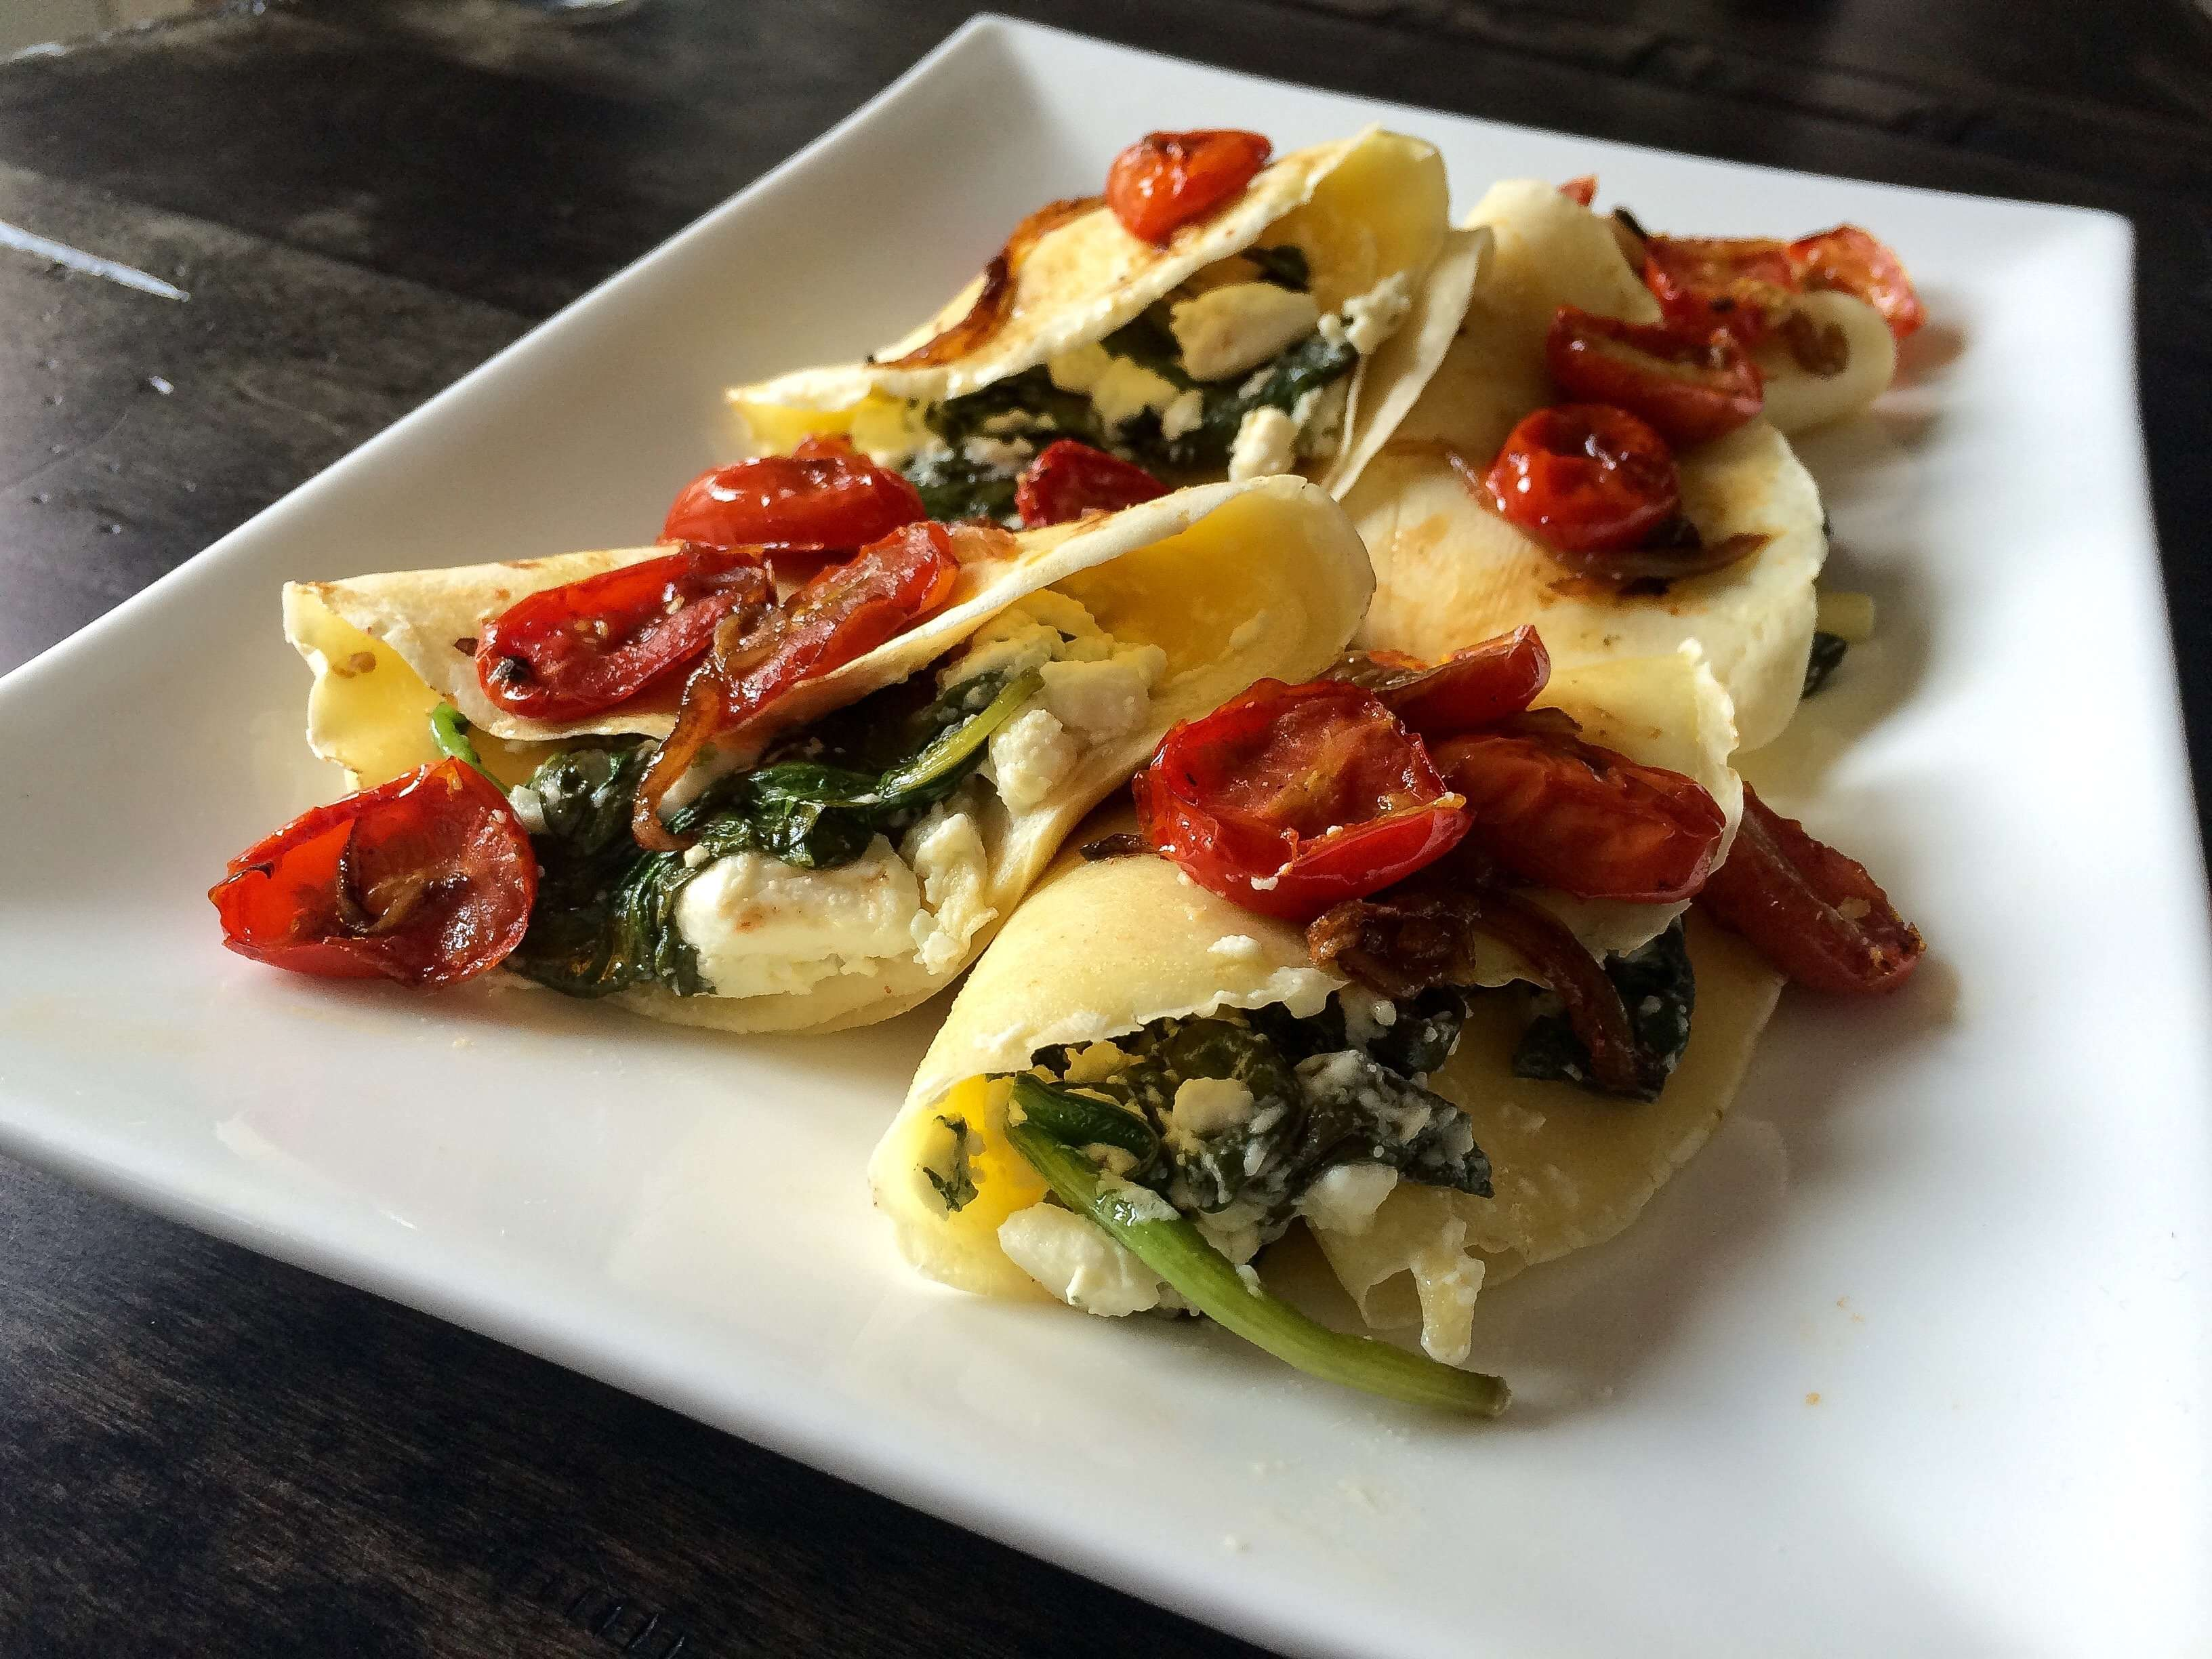 Spinach and Feta Savoury Crepes with Roasted Tomato Chutney